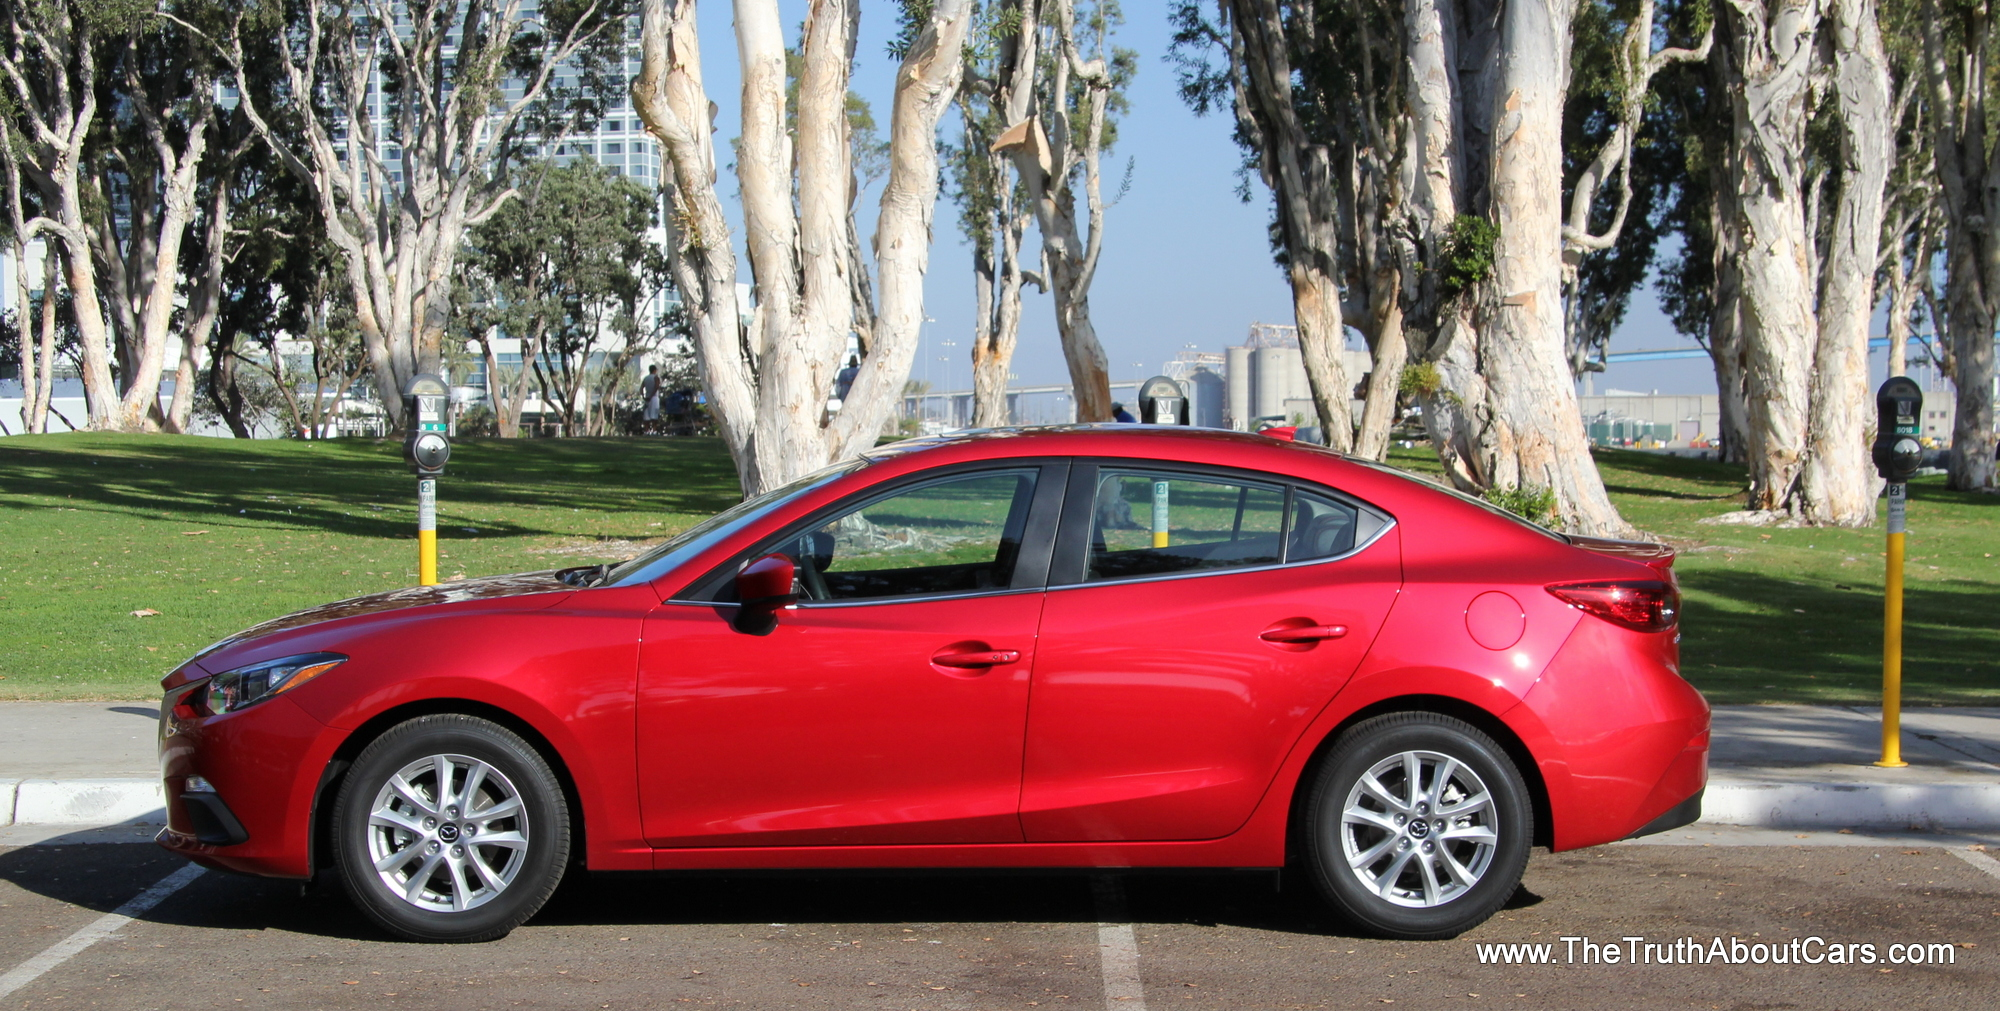 First Drive Review 2014 Mazda3 With Video The Truth